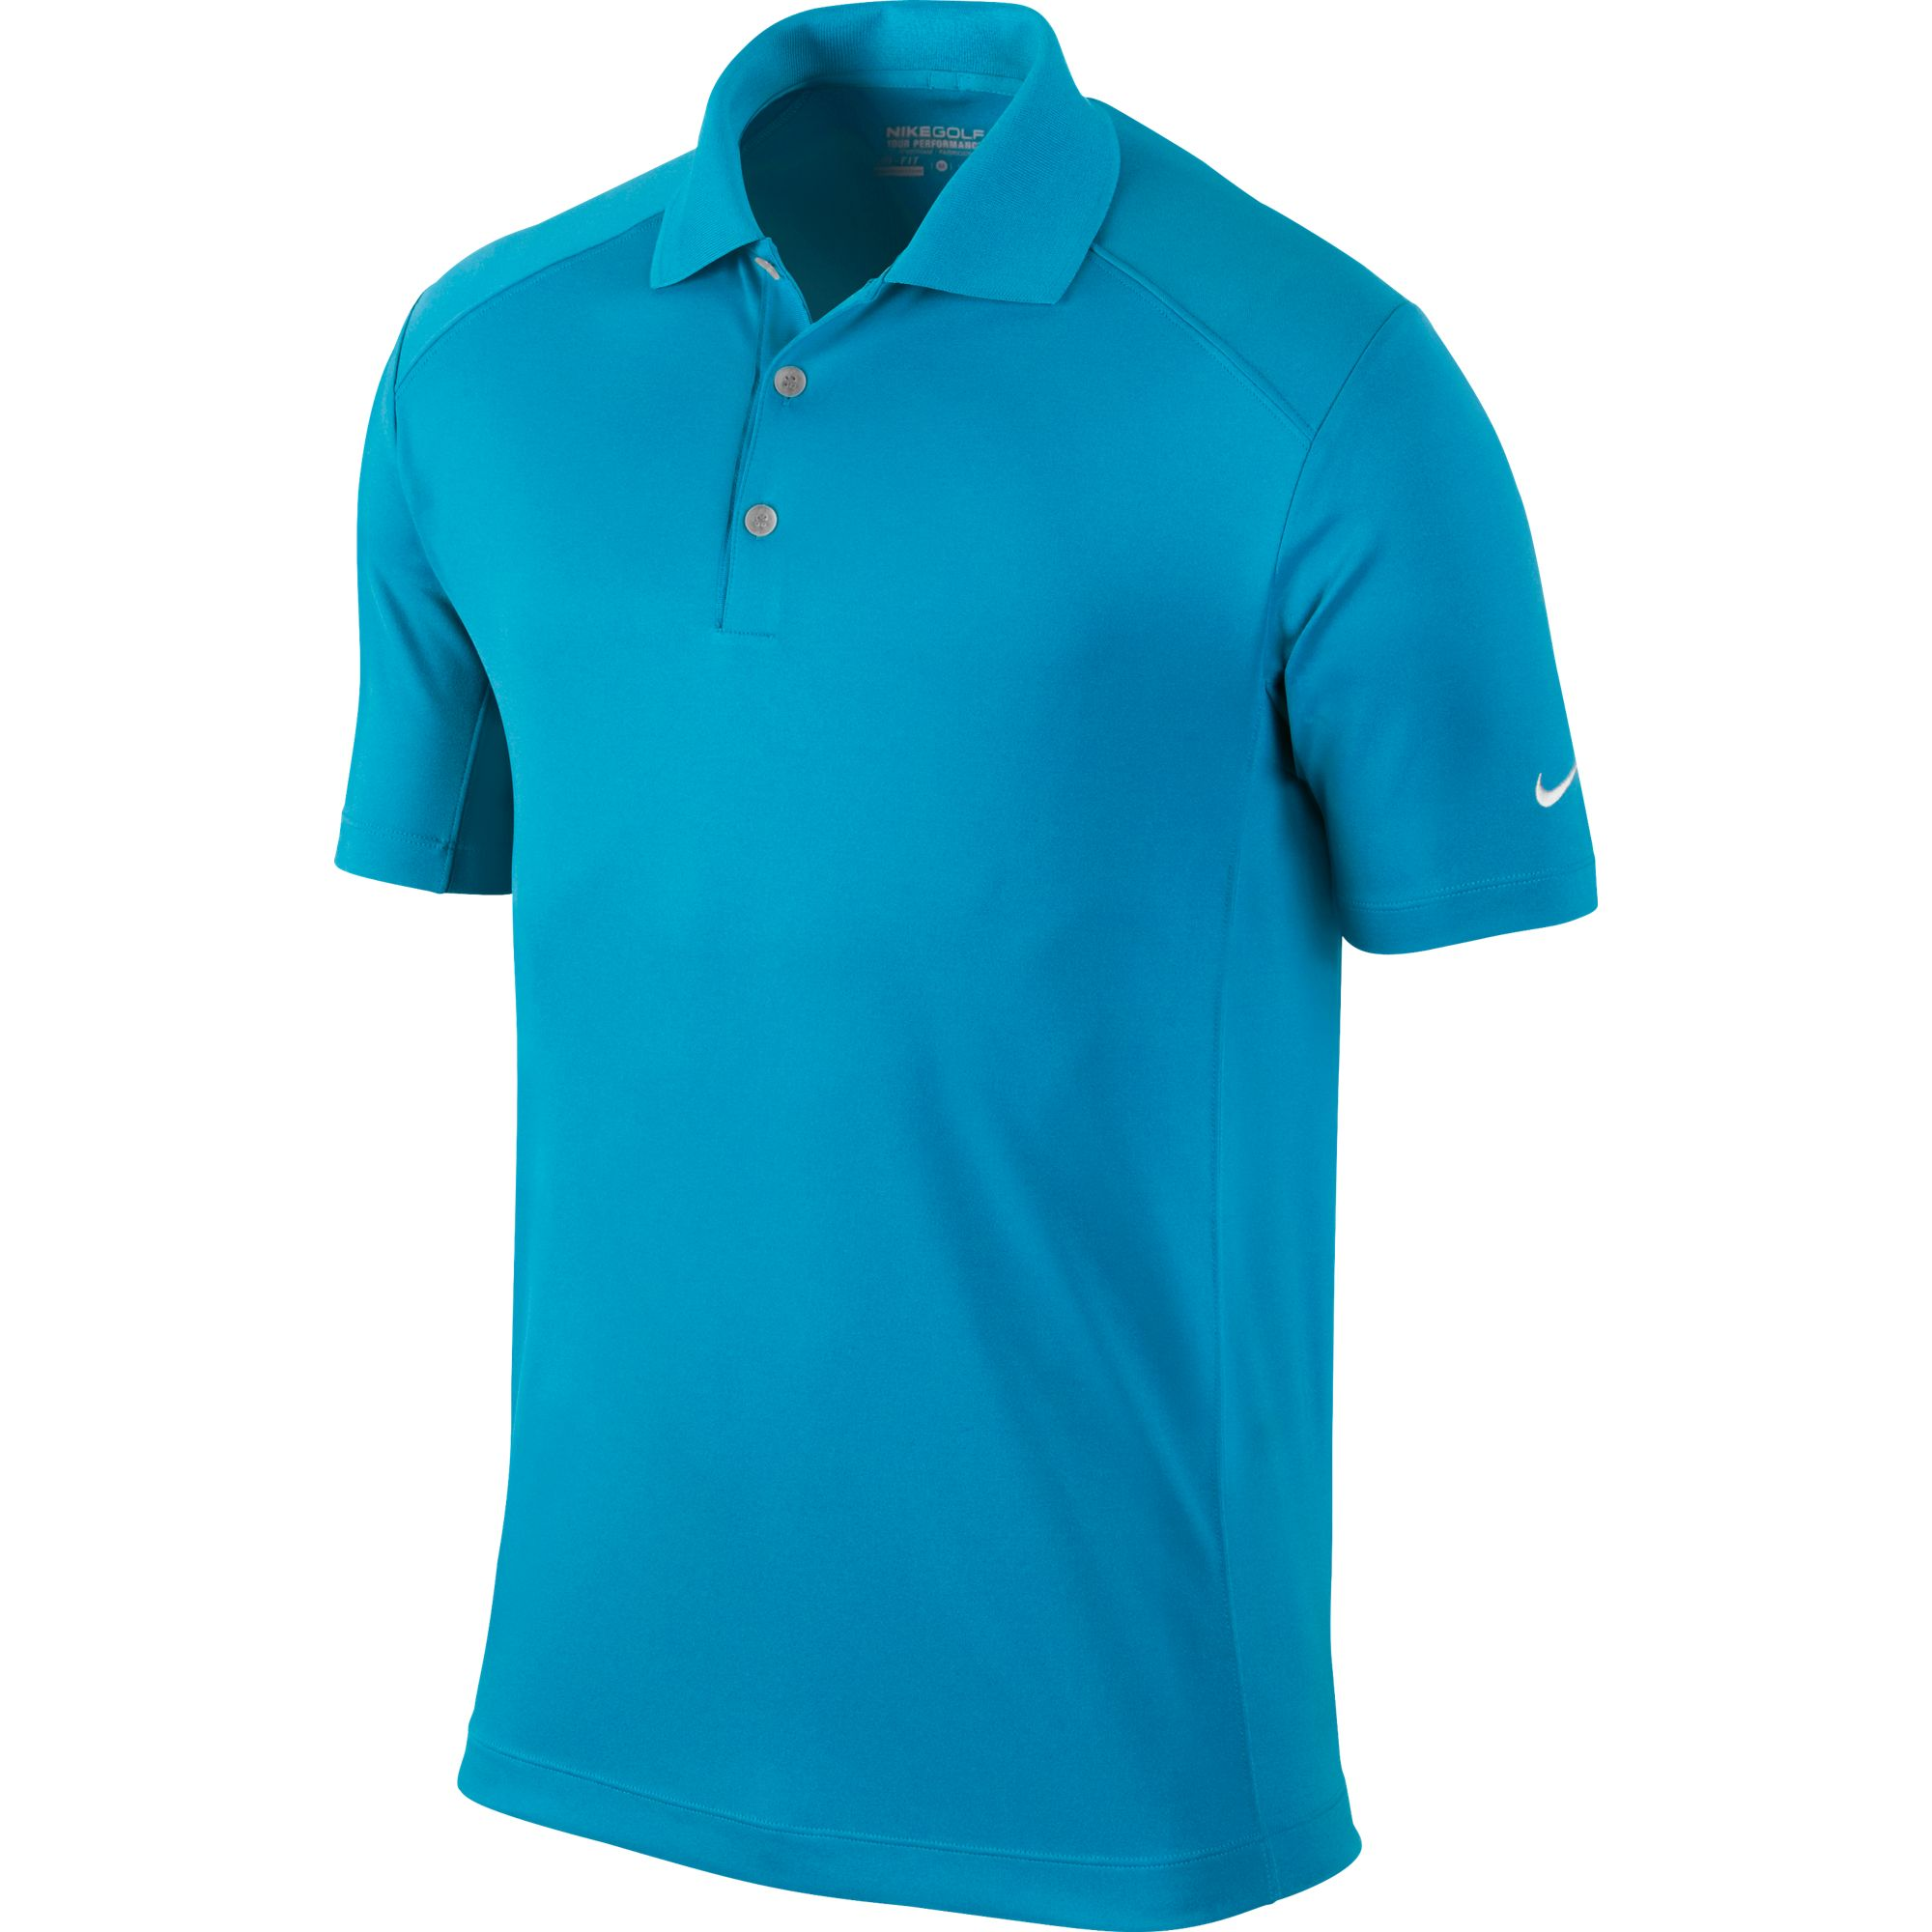 Men's Victory Solid Polo Golf Shirt, Cool Blue, swatch